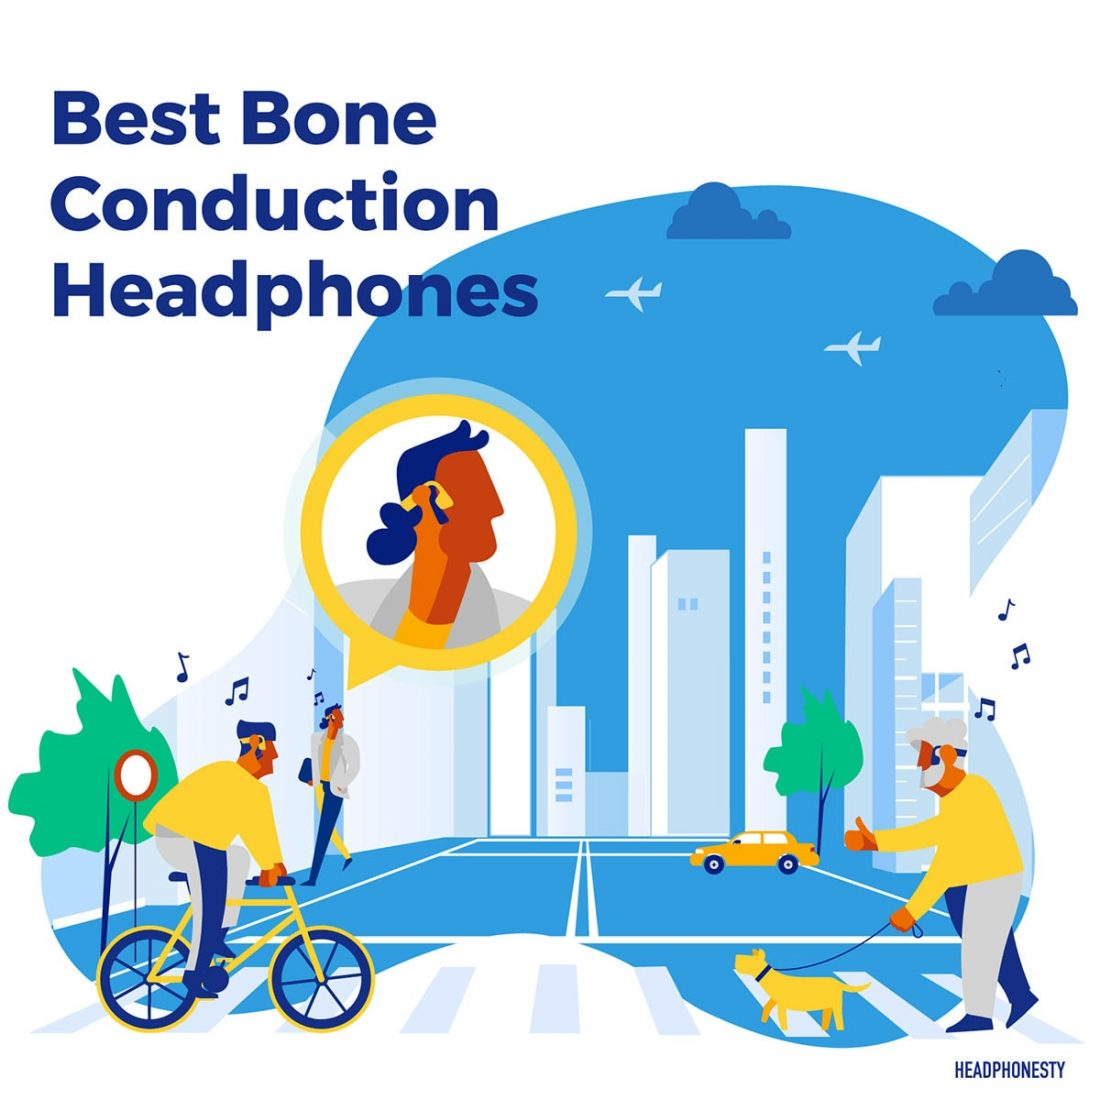 hight resolution of bone conduction headphones are widely used by individuals suffering hearing loss during scuba diving as an essential form of military communications